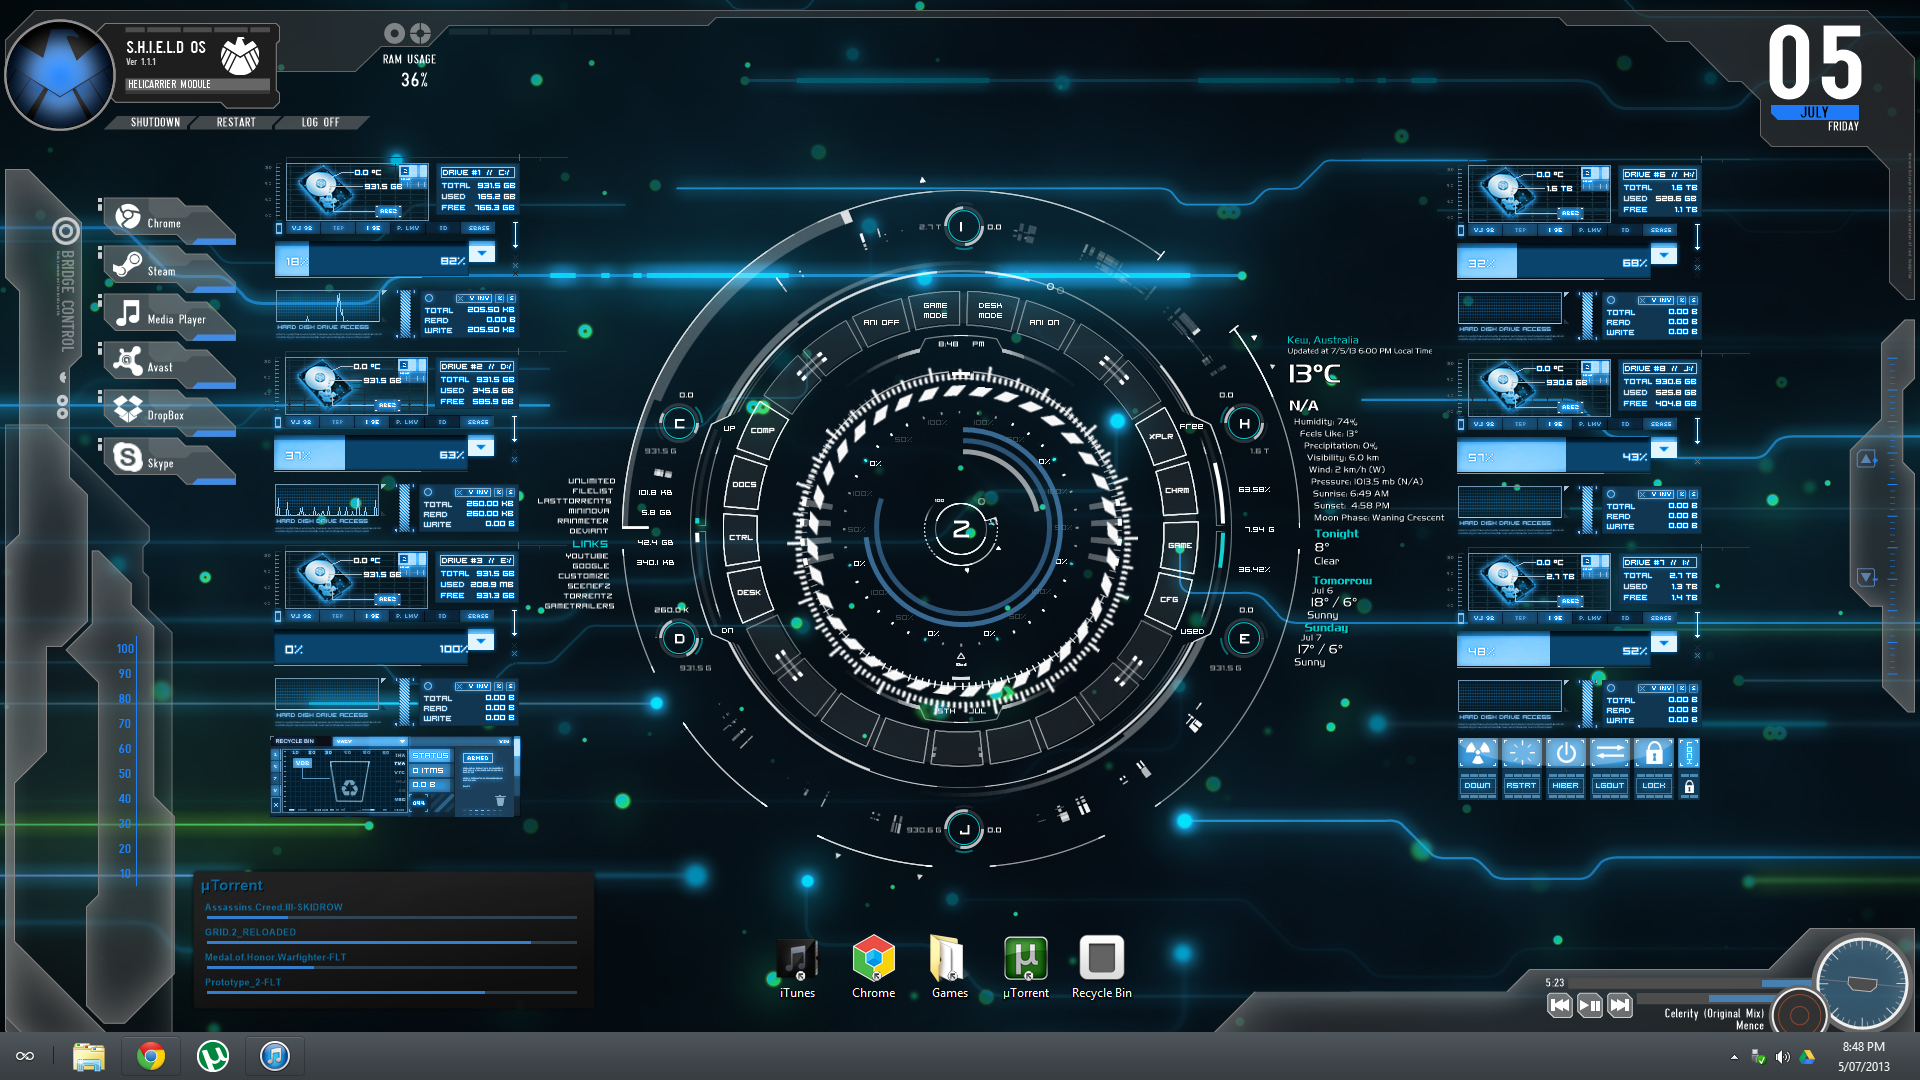 Image Gallery Shield Rainmeter